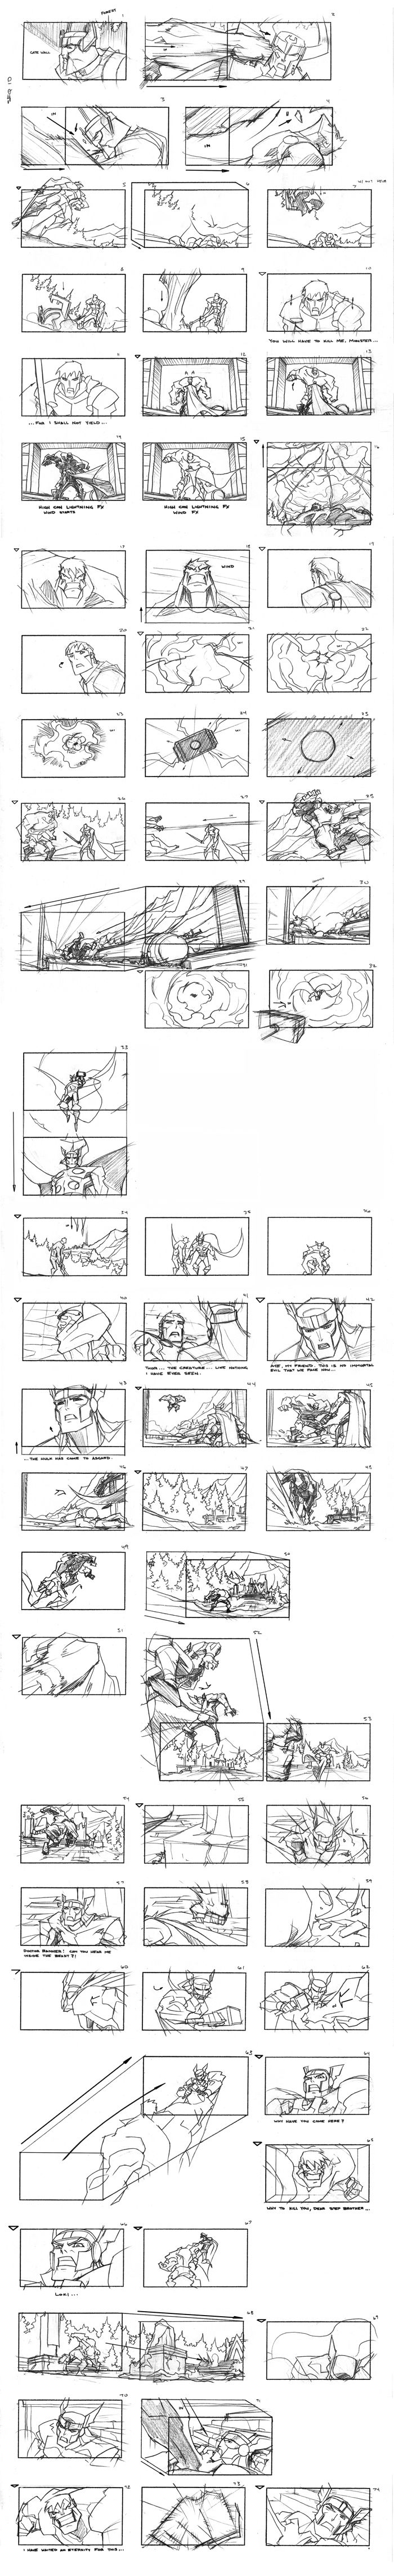 Thor Storyboard Pt. 1 by samliu on deviantART